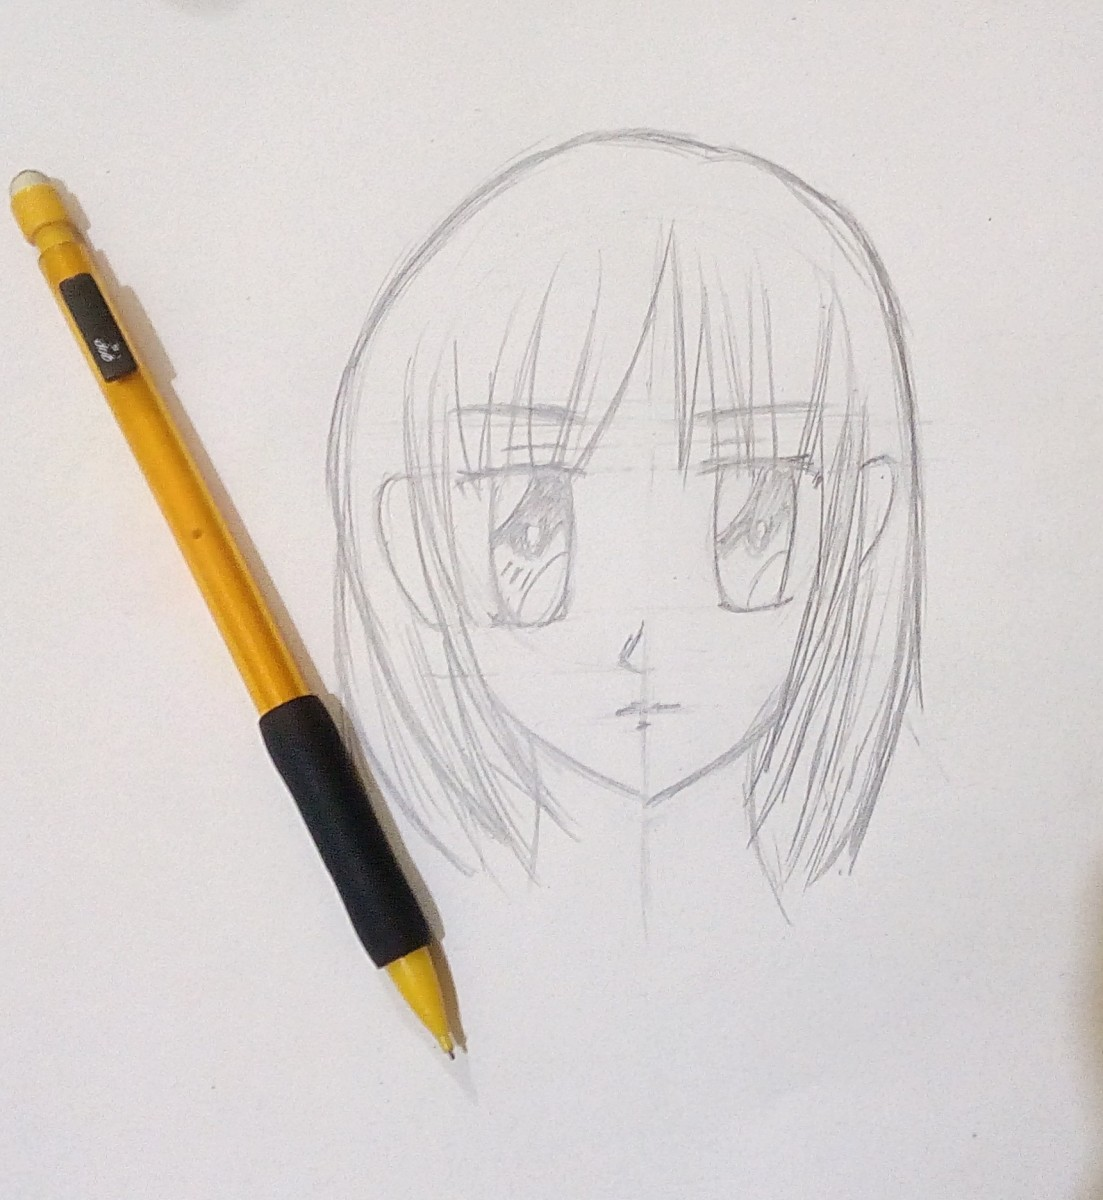 How to Draw an Anime Girl Face (Shojo) - FeltMagnet - Crafts